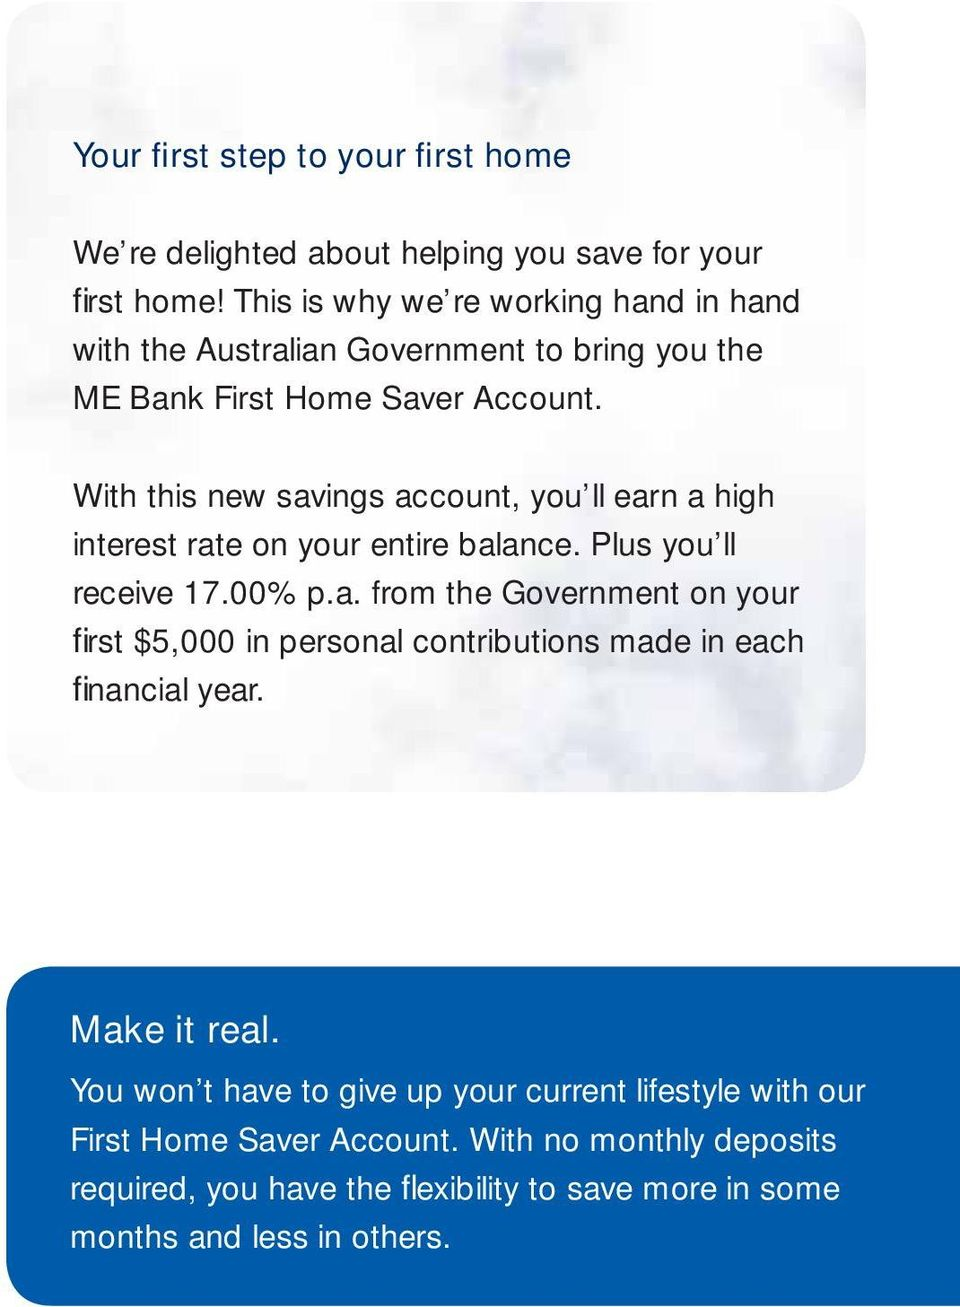 With this new savings account, you ll earn a high interest rate on your entire balance. Plus you ll receive 17.00% p.a. from the Government on your fi rst $5,000 in personal contributions made in each fi nancial year.